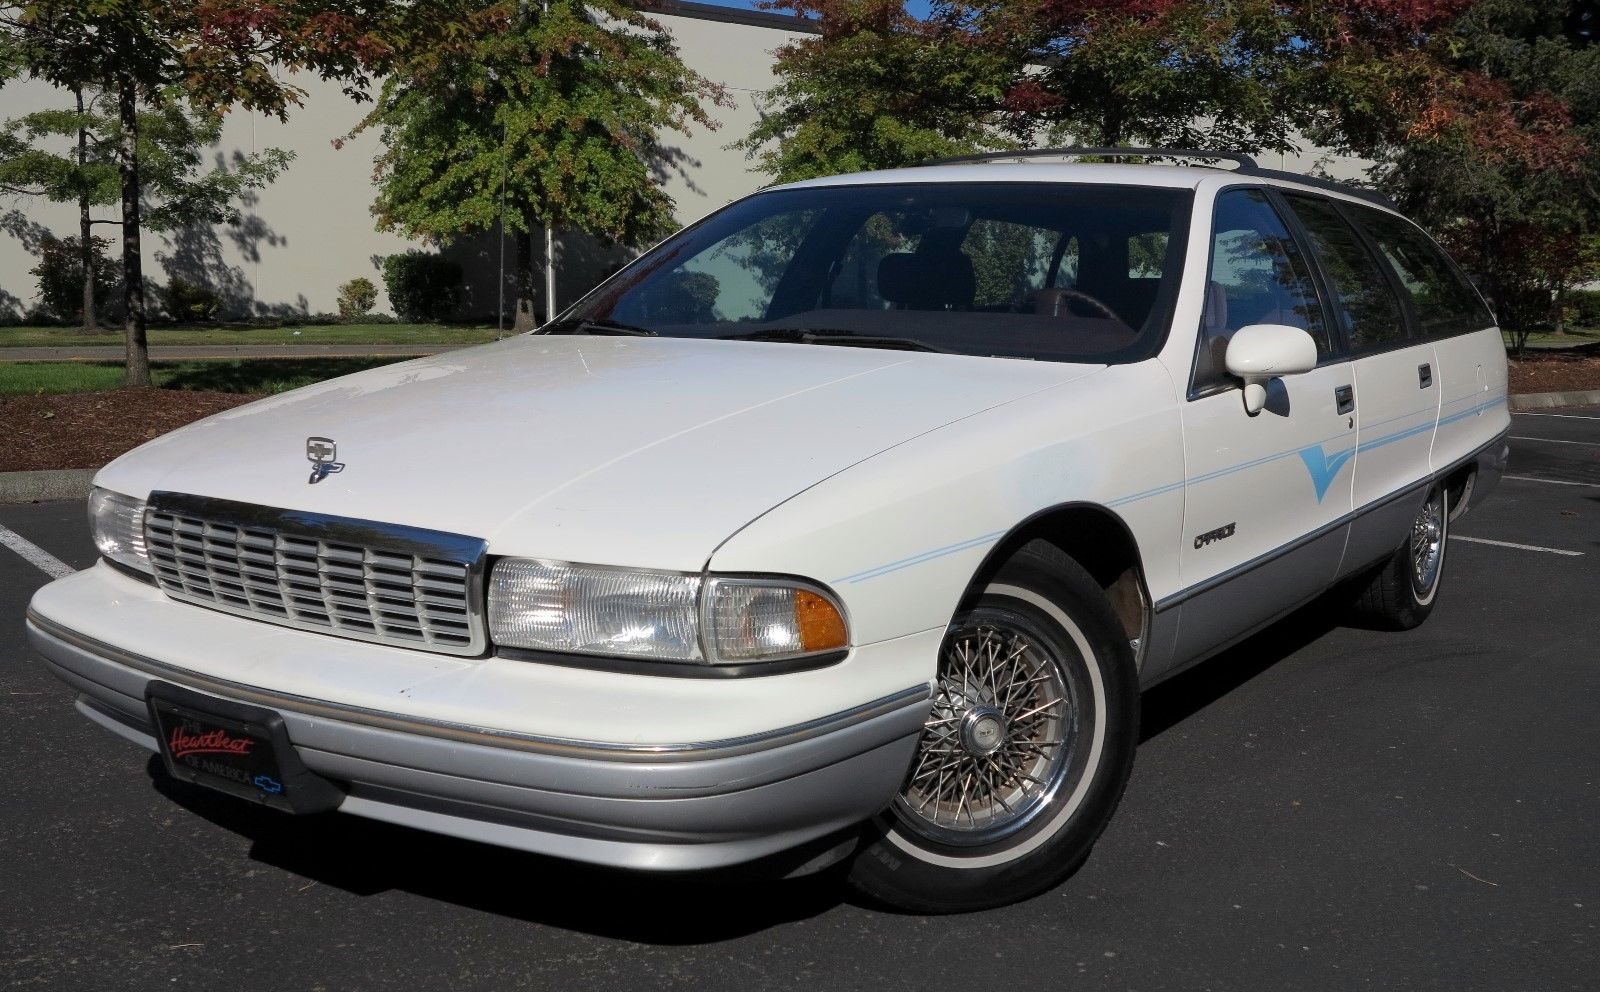 1991 Chevrolet Caprice Classic Wagon low 3/4 front